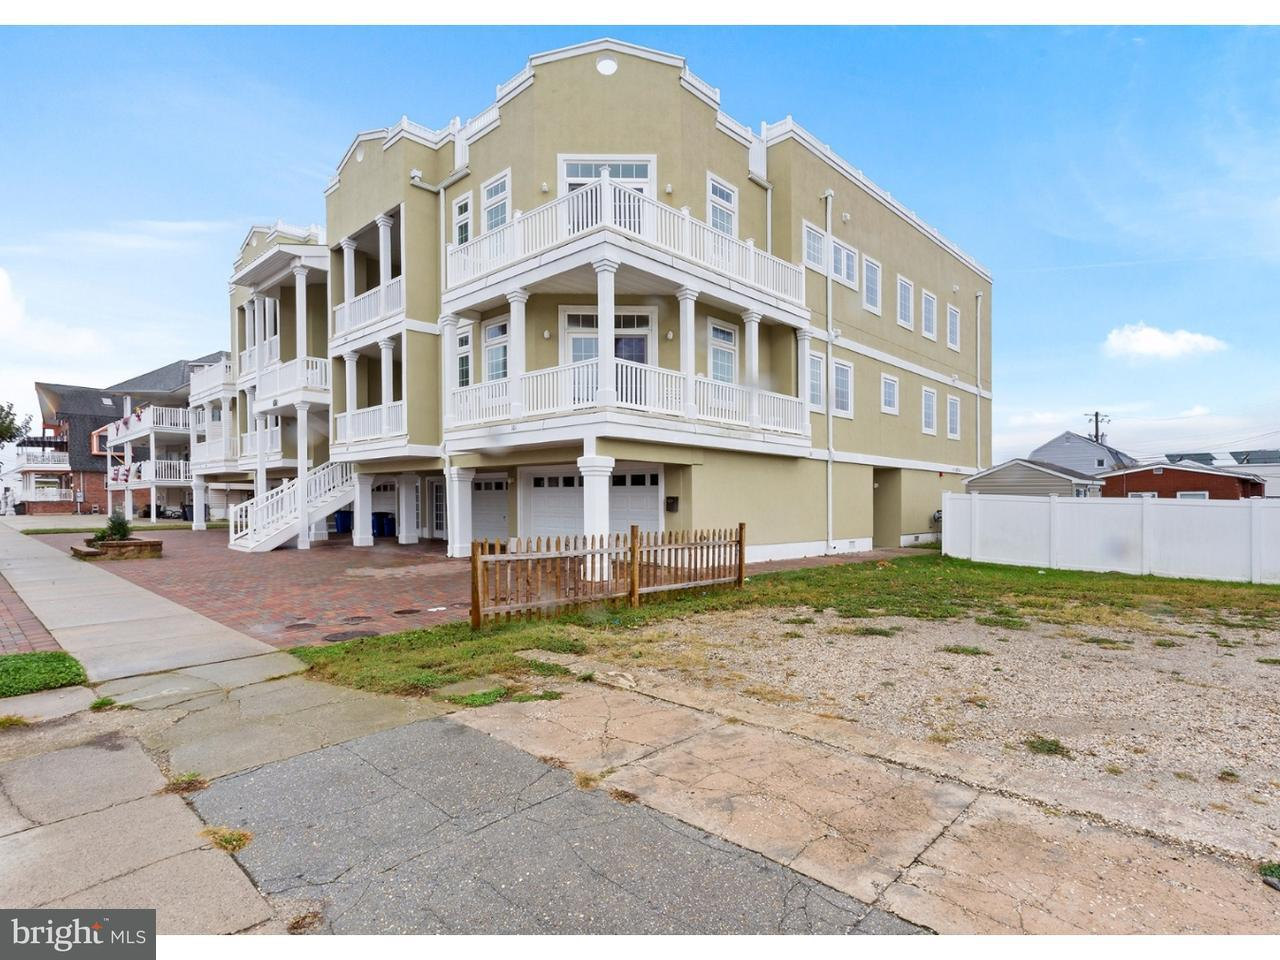 Townhouse for Sale at 110 E WALNUT AVE #101 North Wildwood, New Jersey 08260 United States